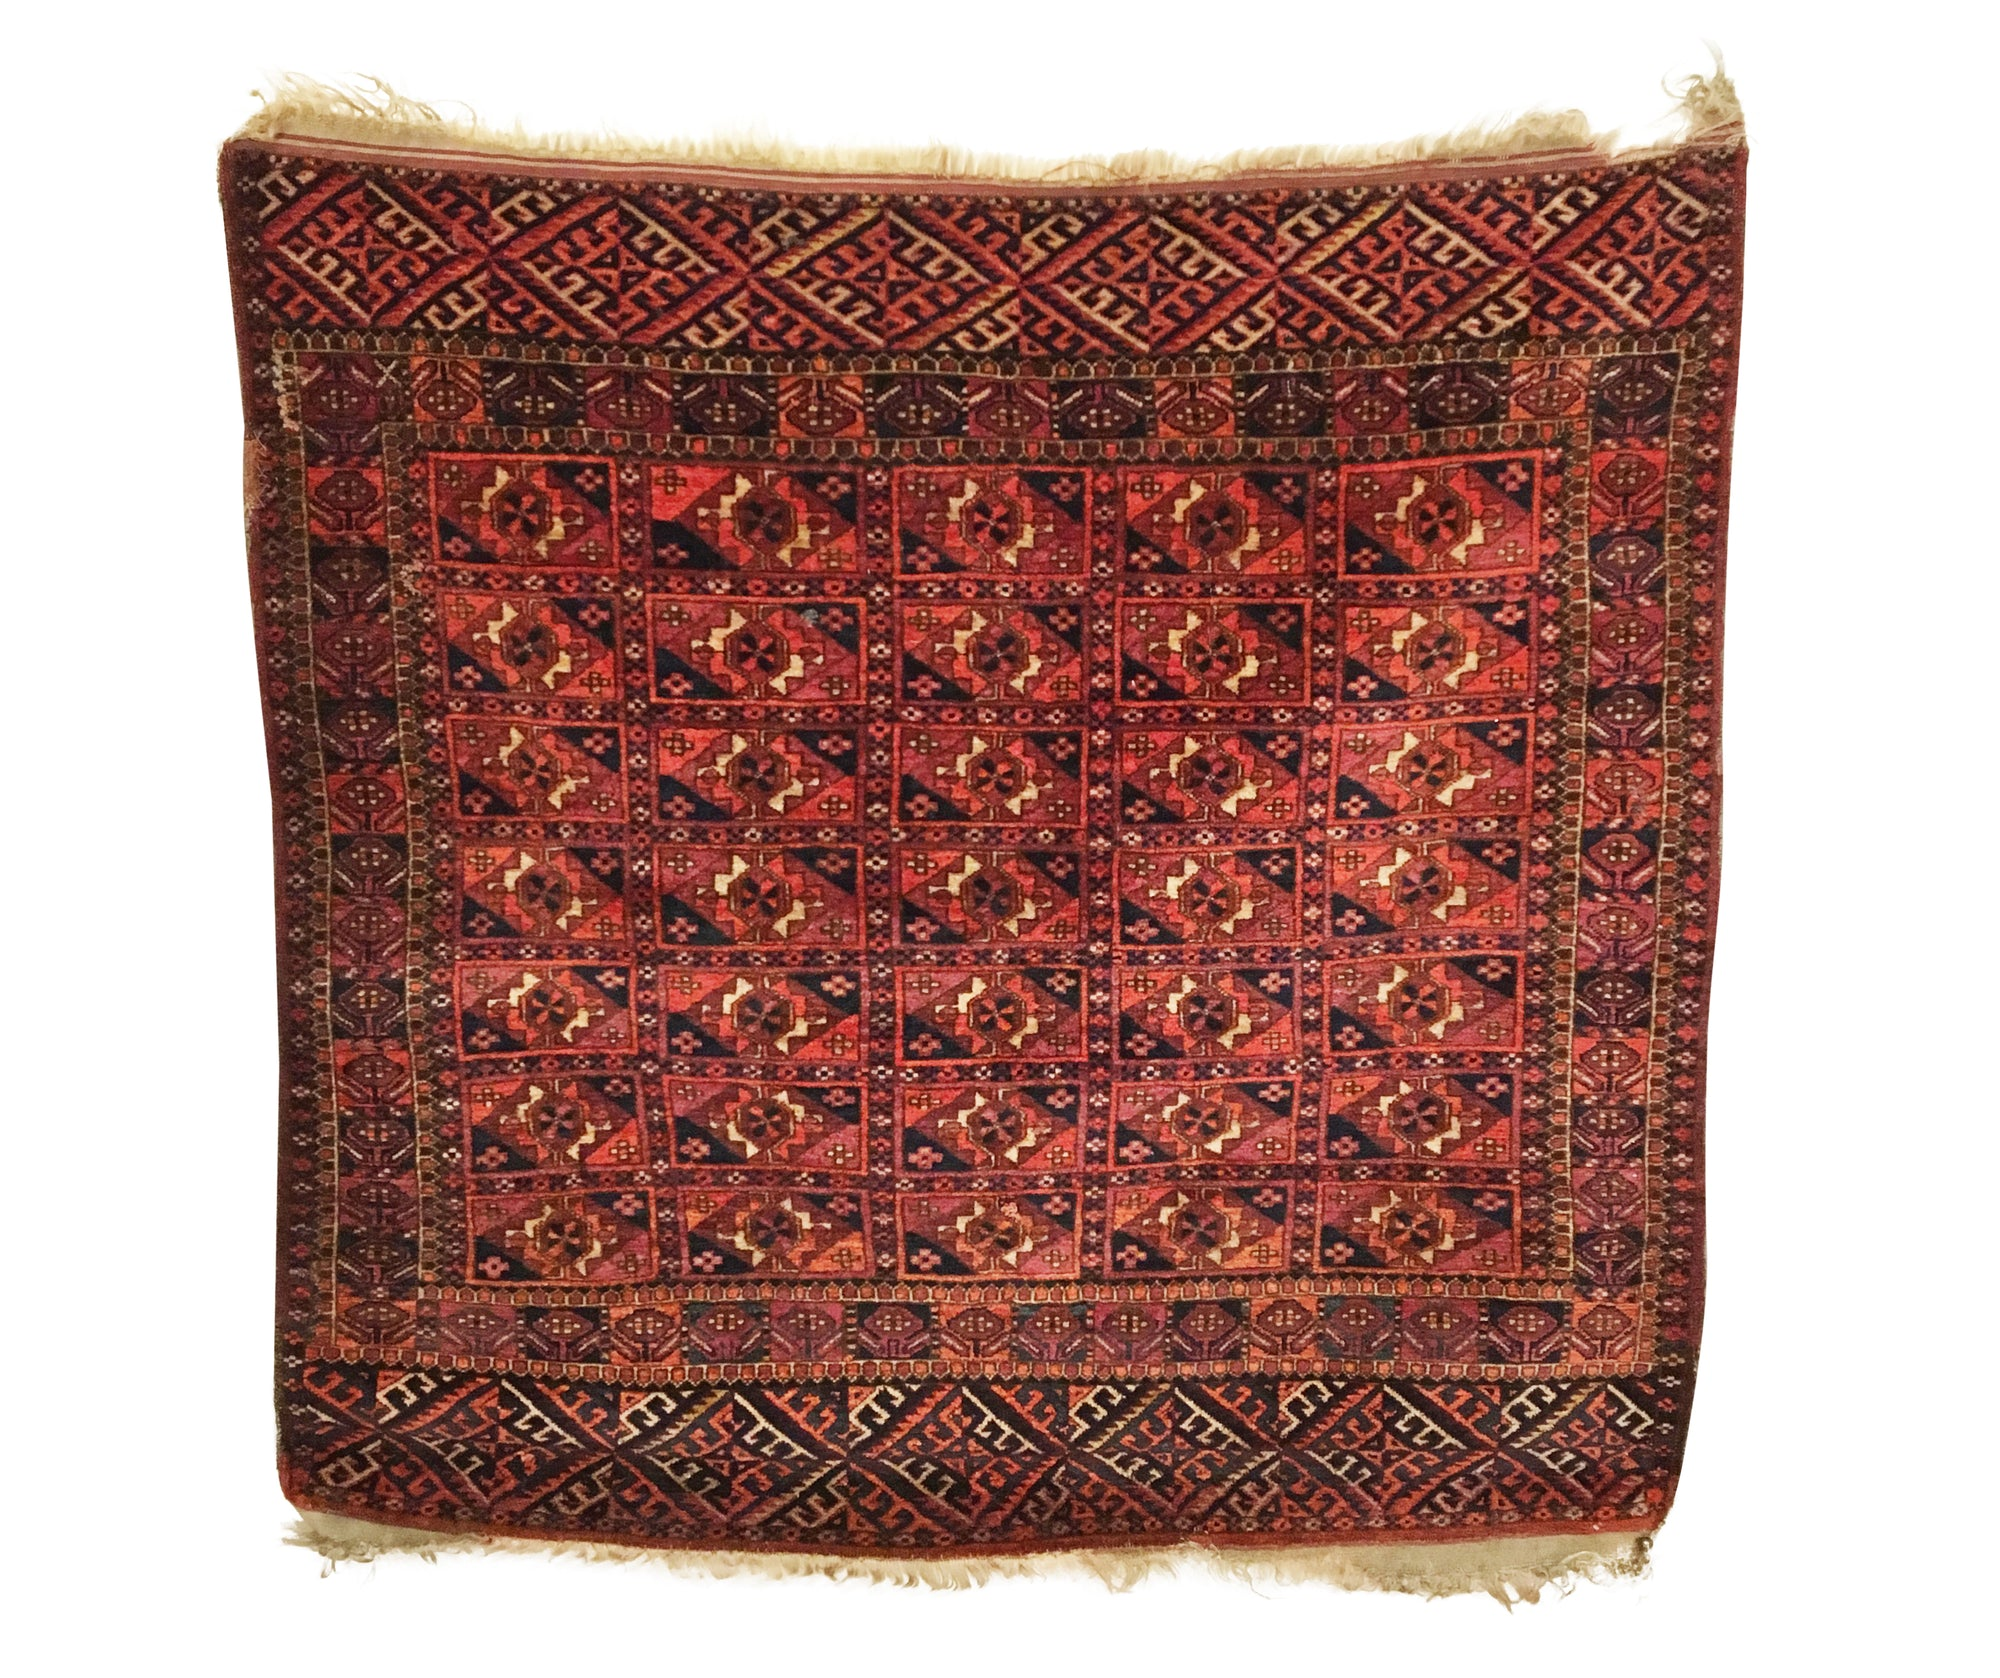 Antique Turkmen Tekke Rug 3'5 x 3'4